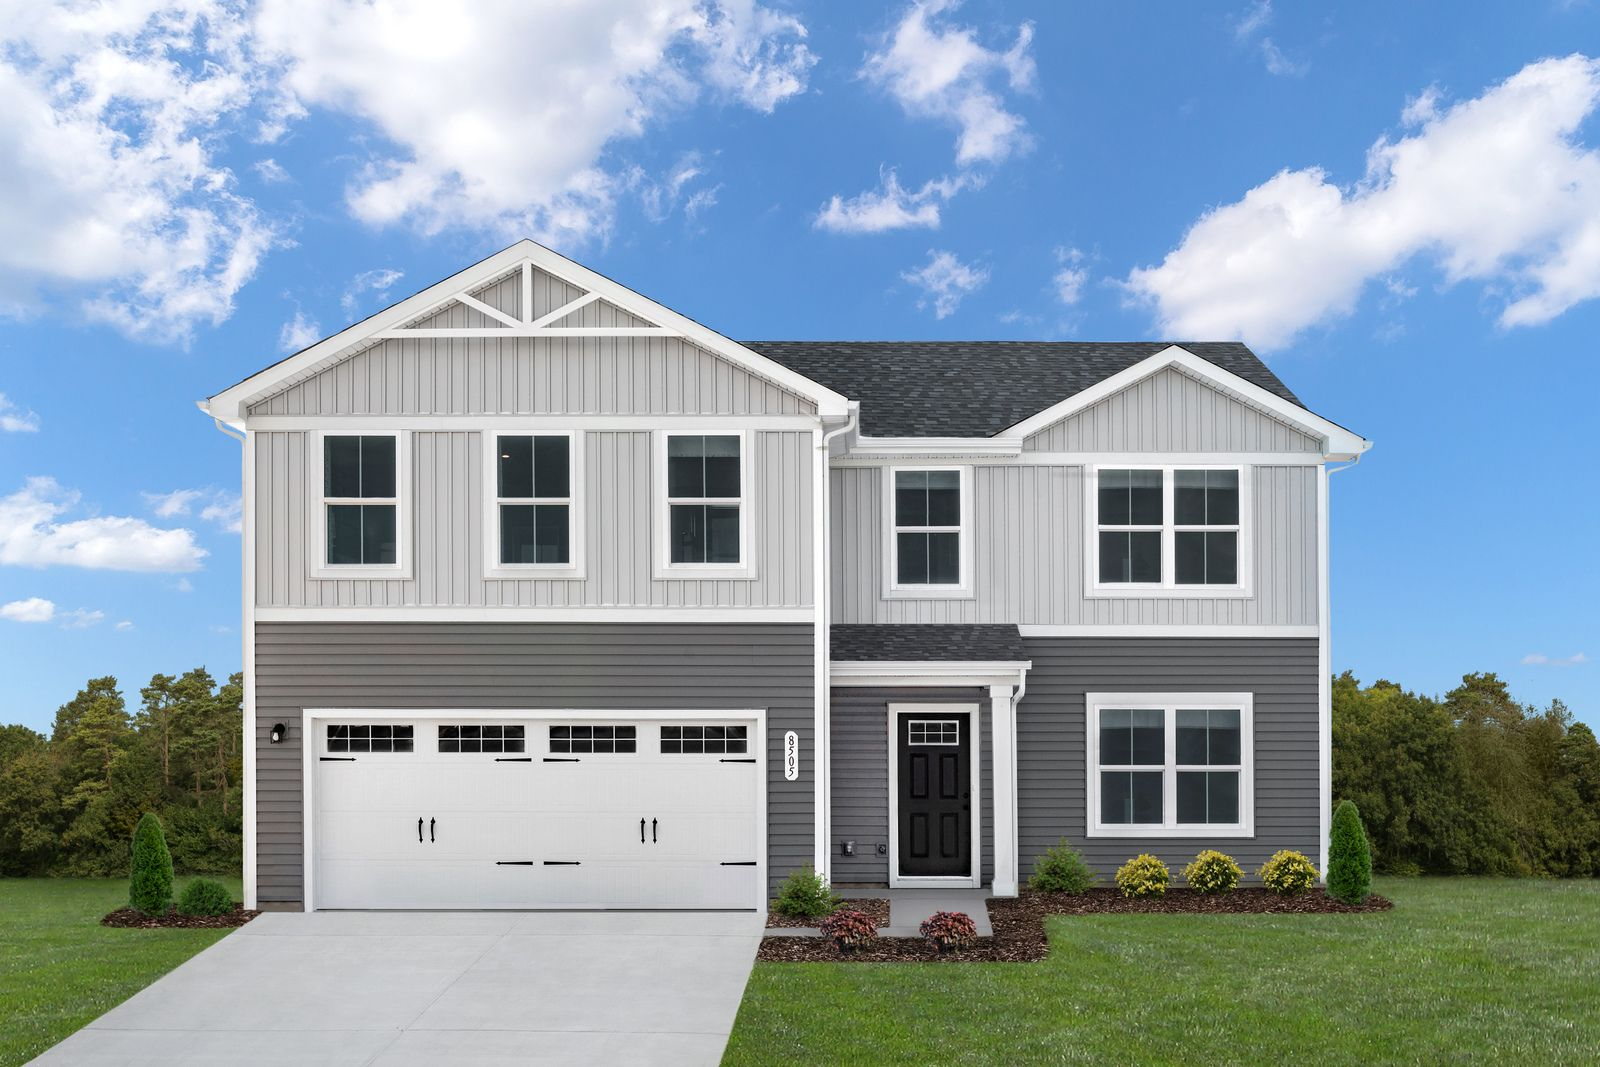 WELCOME HOME TO EAST NEW HAVEN:Ranch and 2-story homes with reduced taxes! From the upper $100s, upgrade your home with Summit County's lowest-priced new construction.Click here to schedule your visit today!